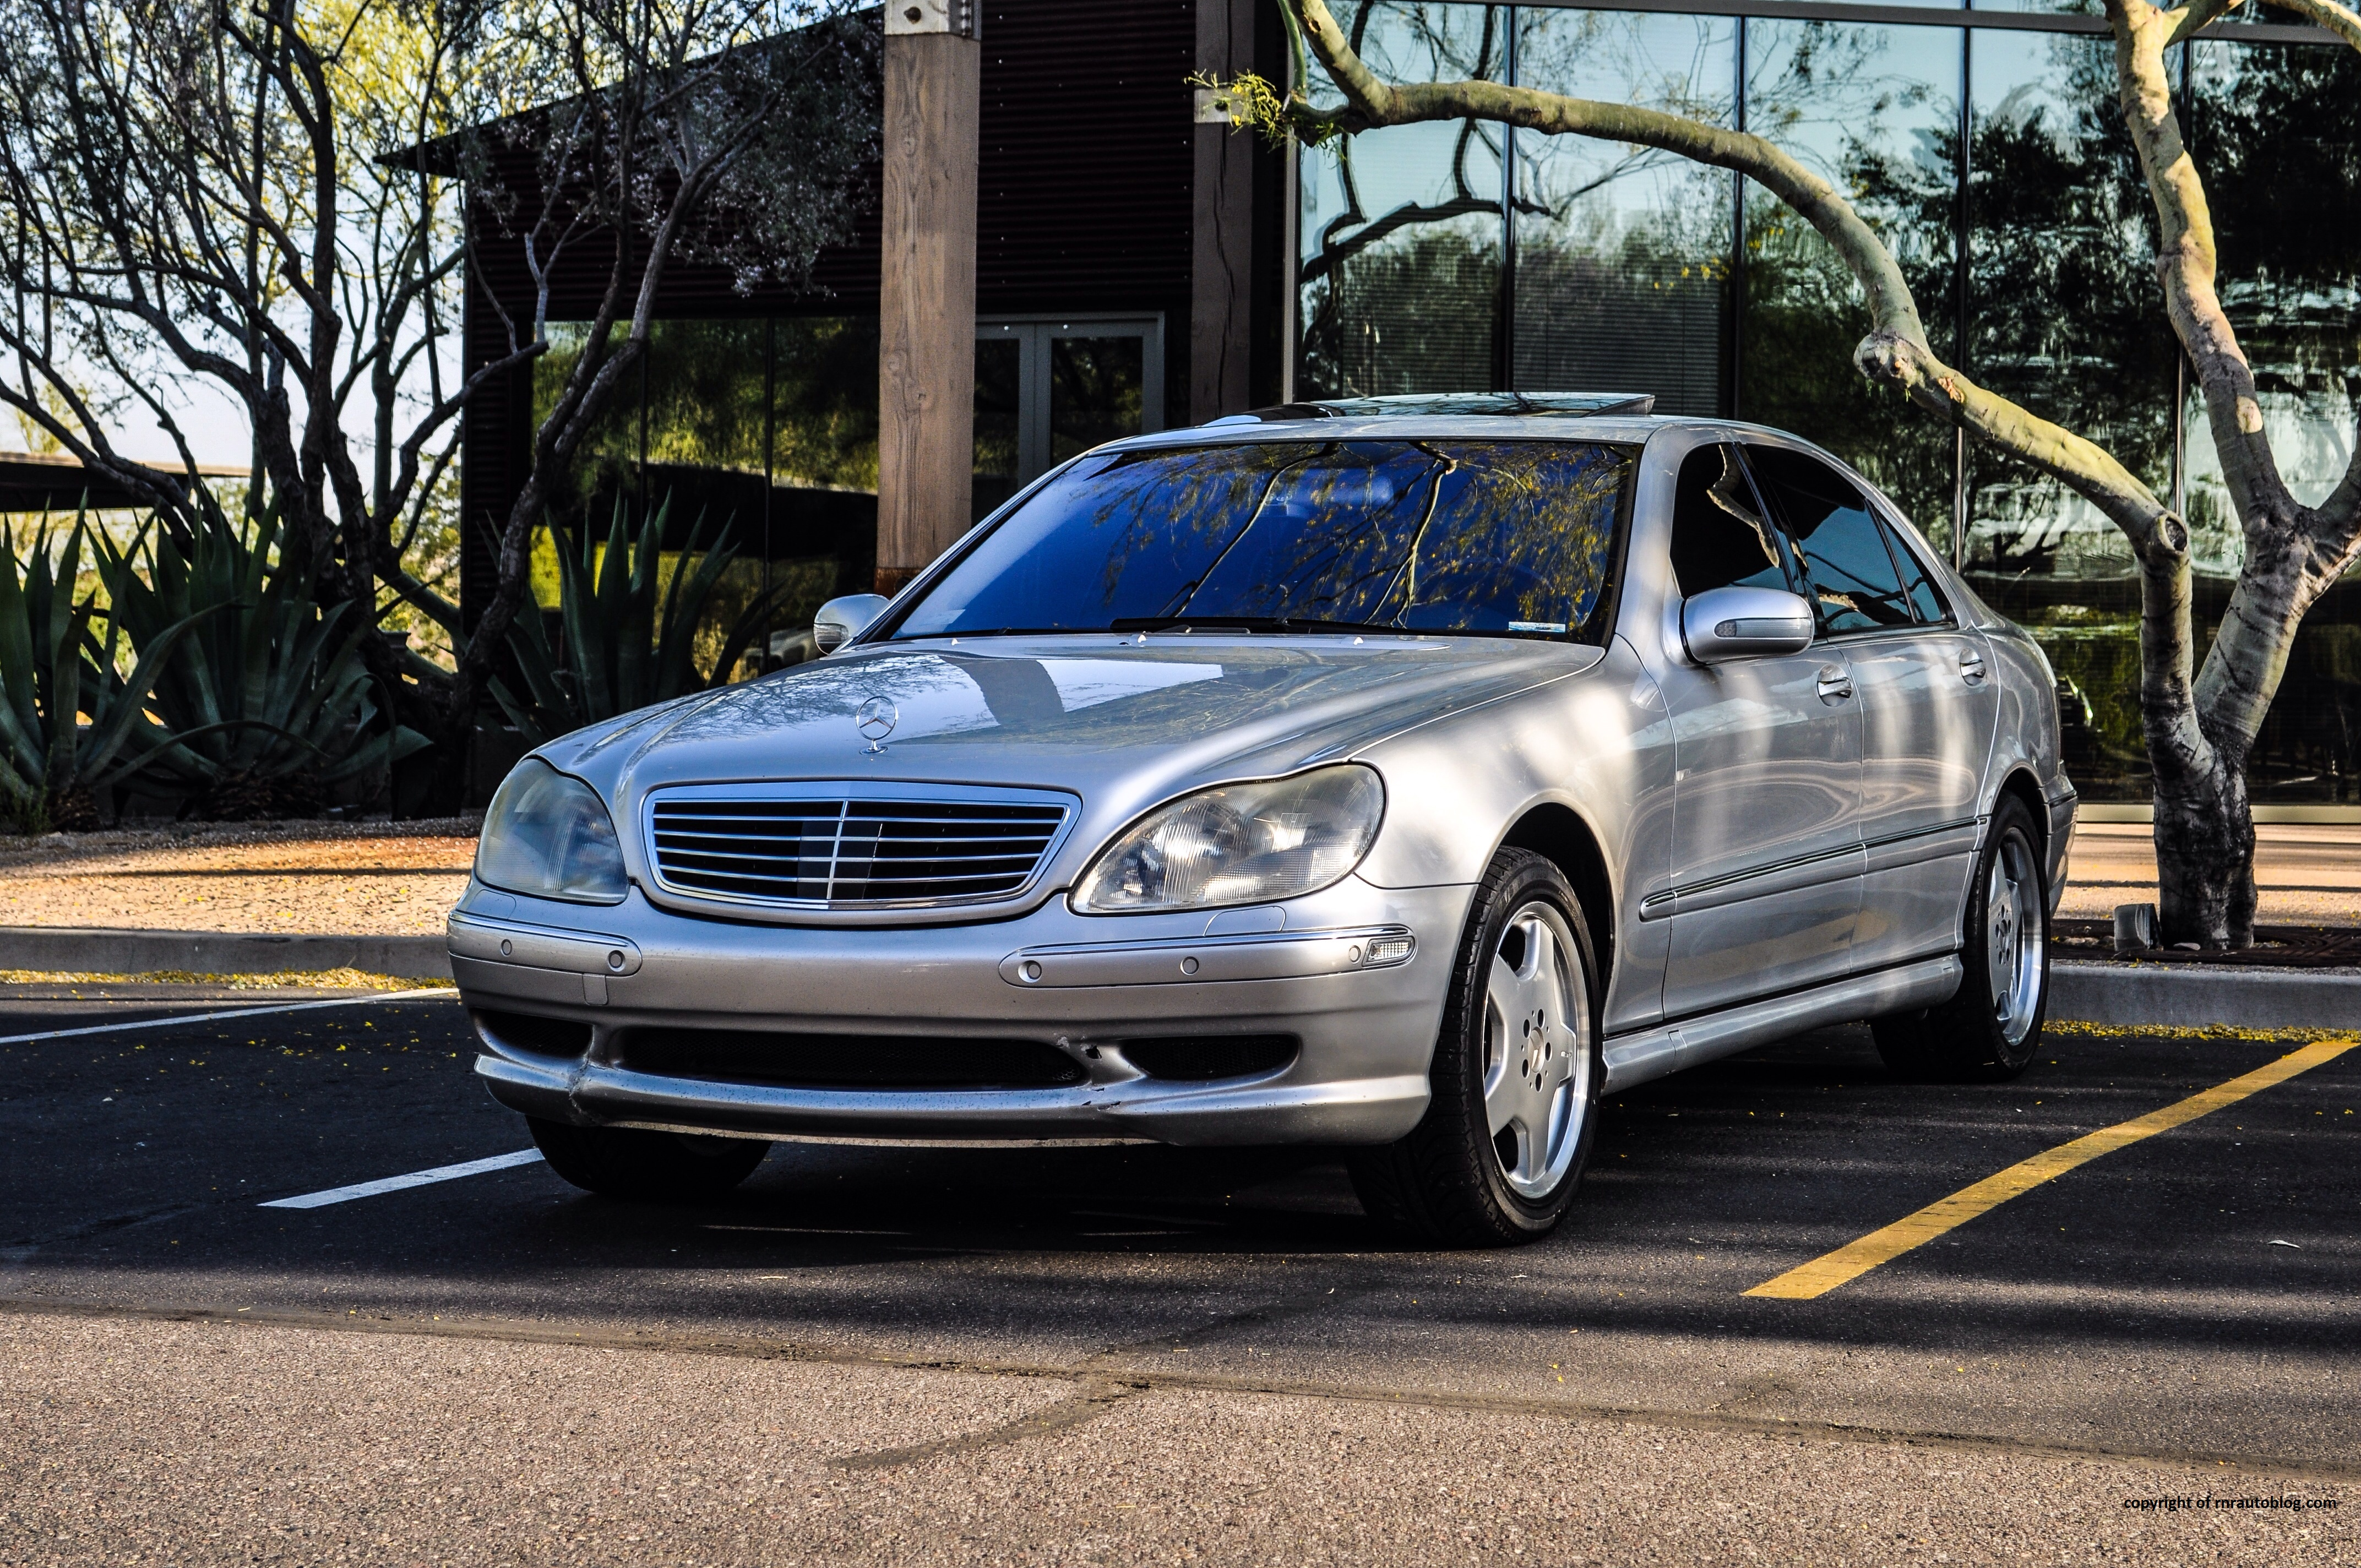 2001 mercedes benz s55 amg review rnr automotive blog for Mercedes benz s500 amg